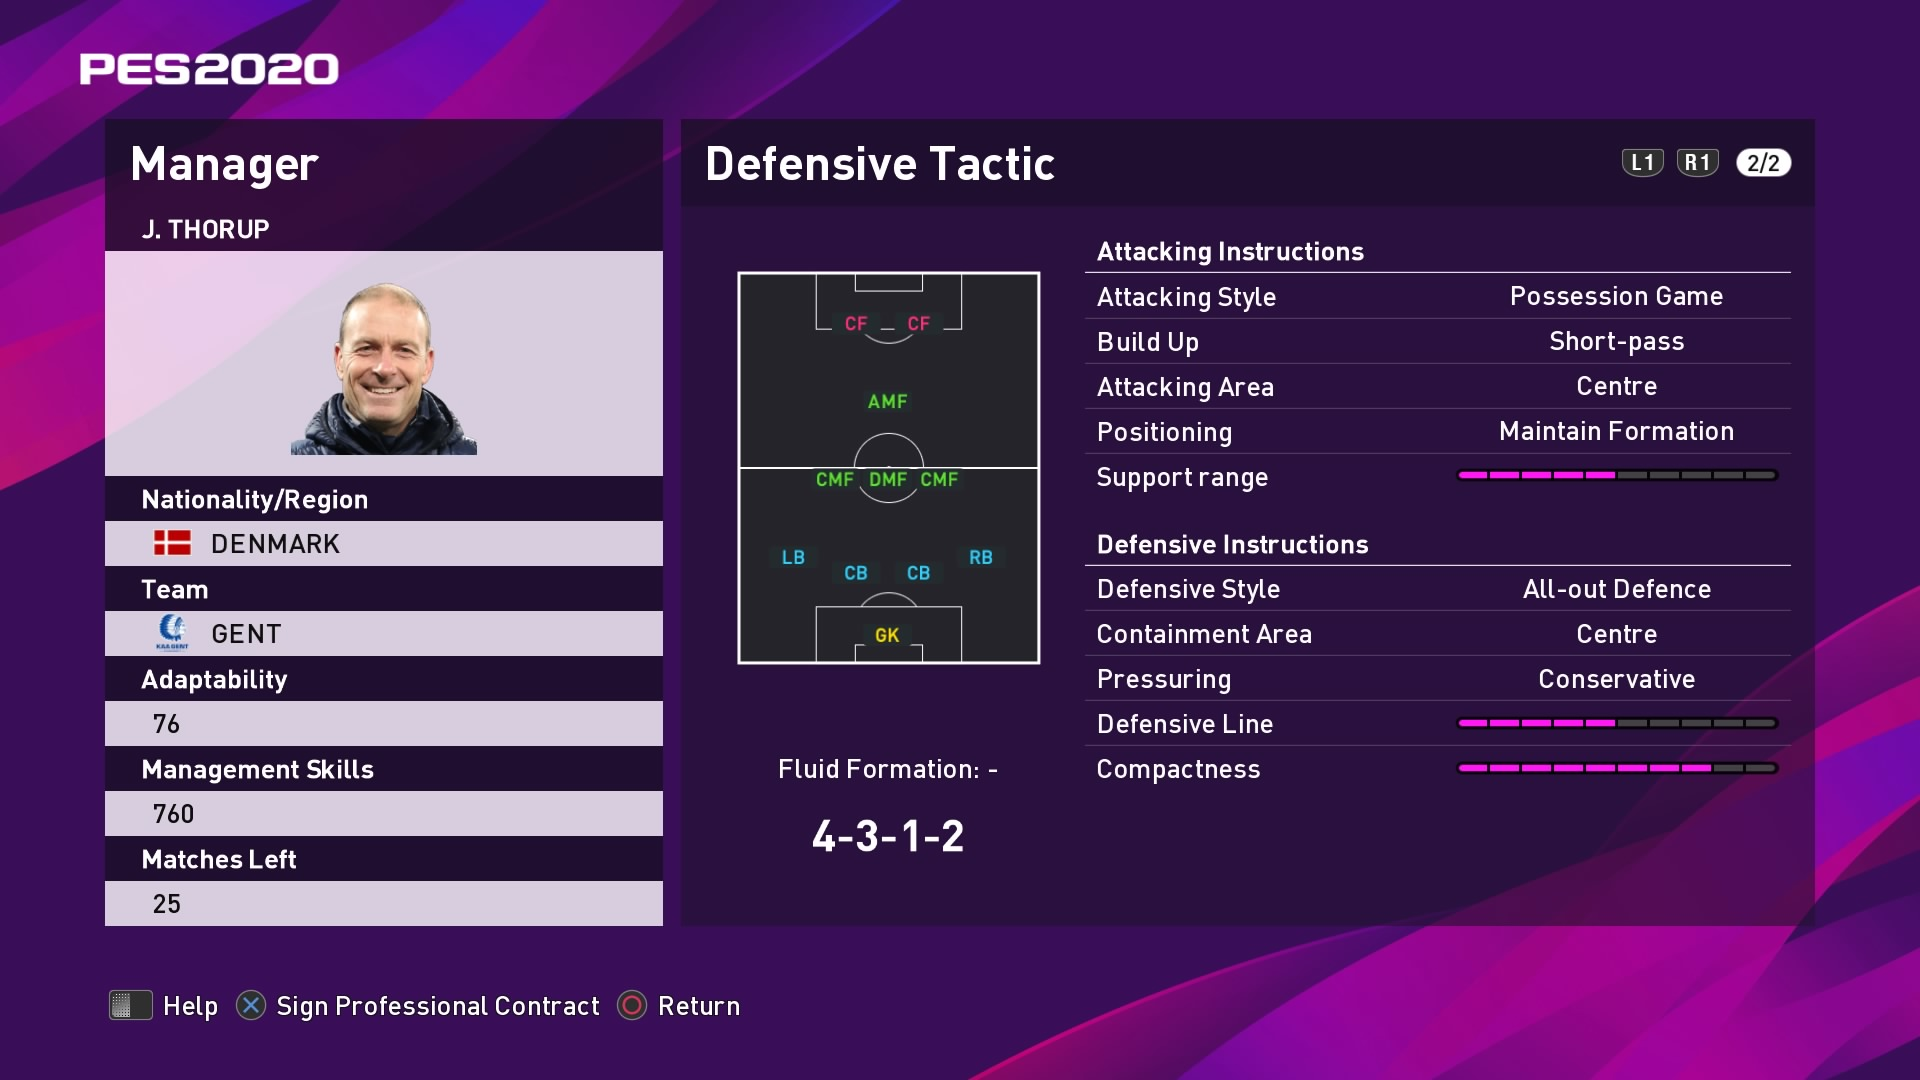 J. Thorup (Jess Thorup) Defensive Tactic in PES 2020 myClub